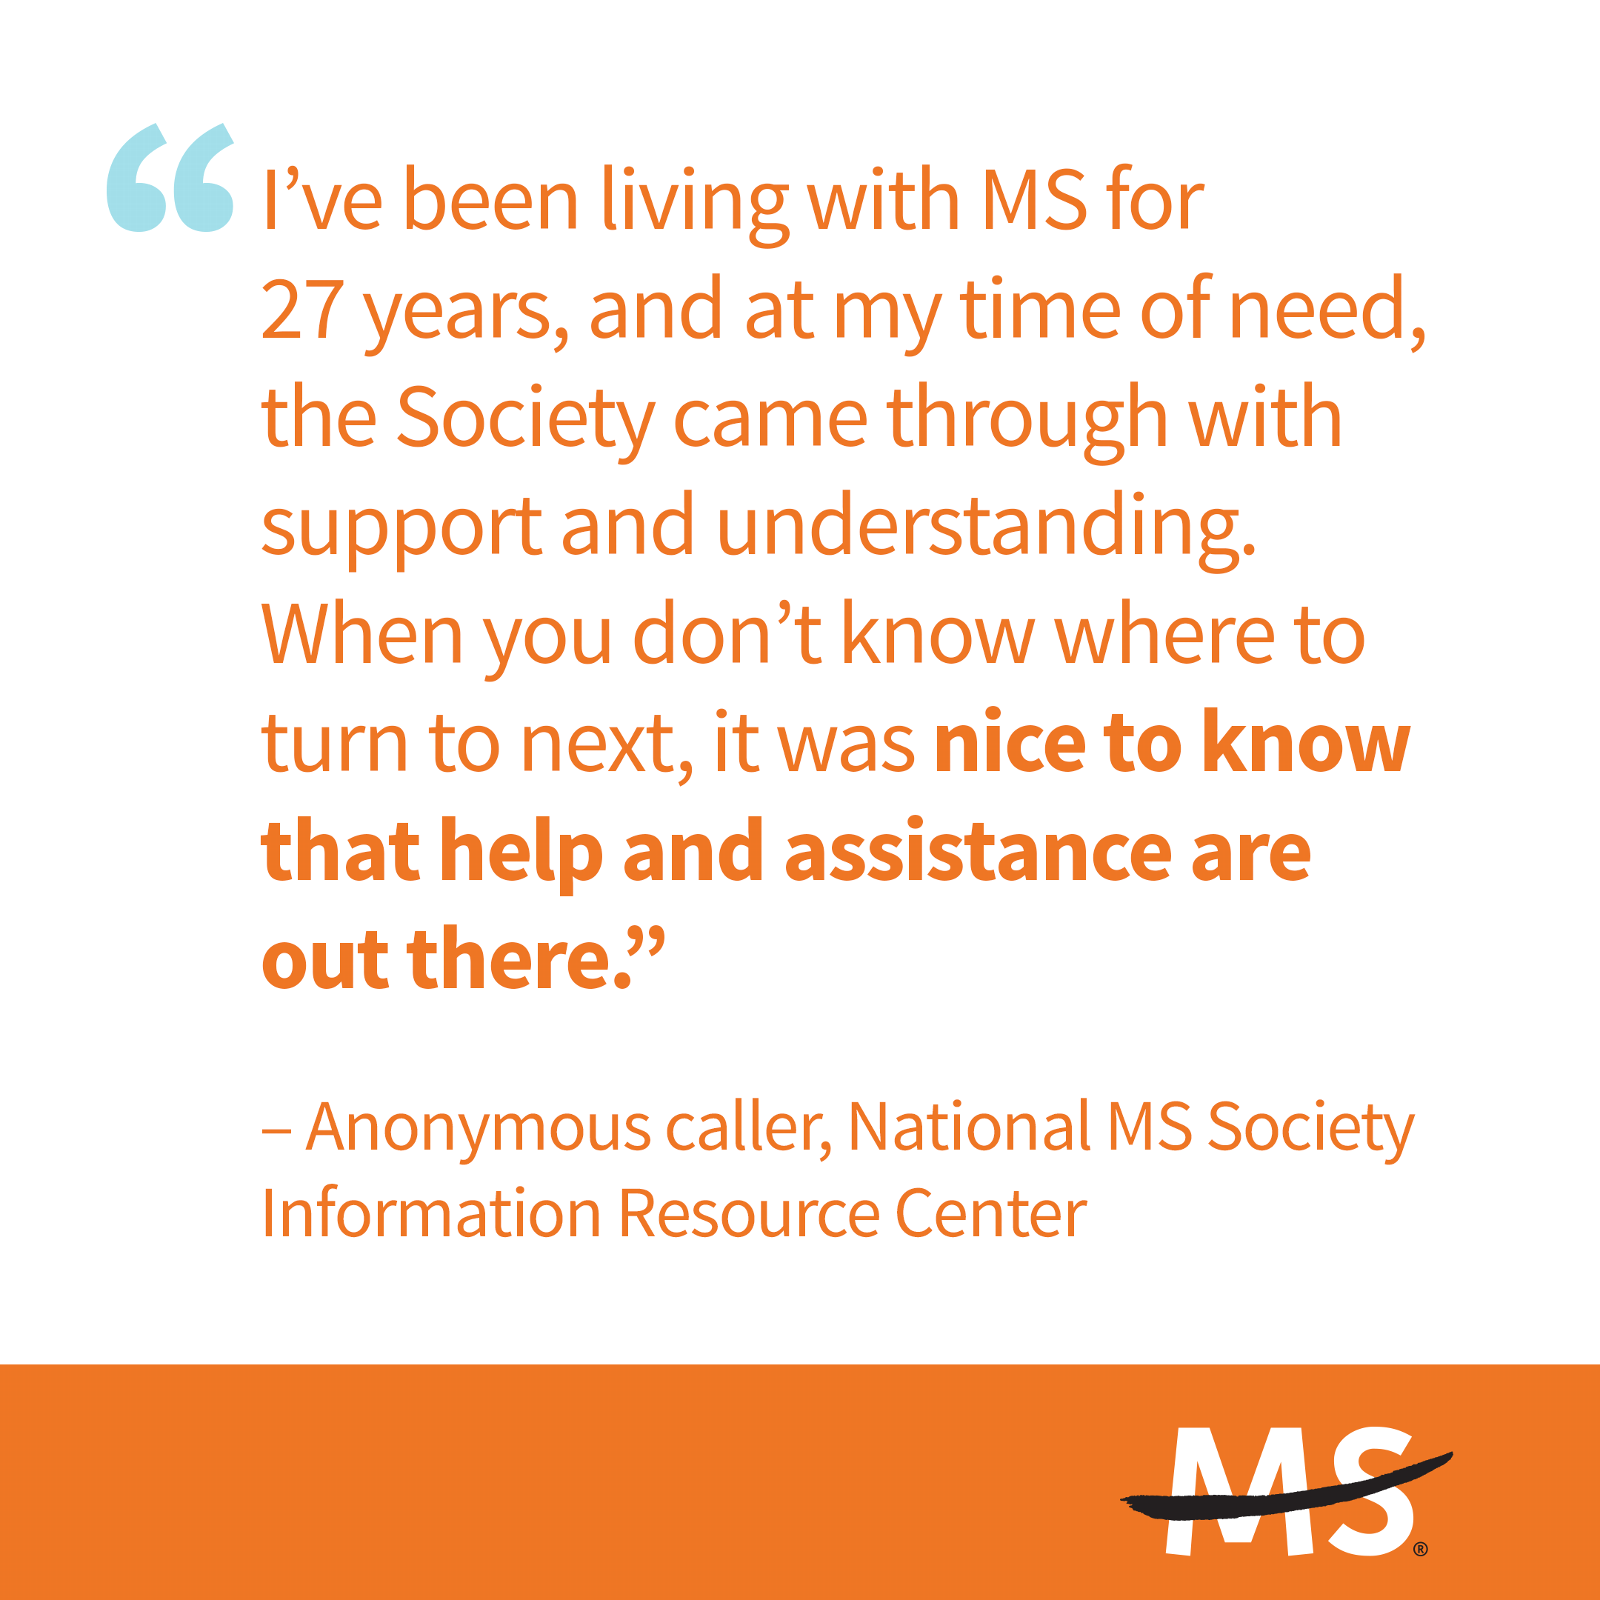 Quote from person living with MS for 27 years